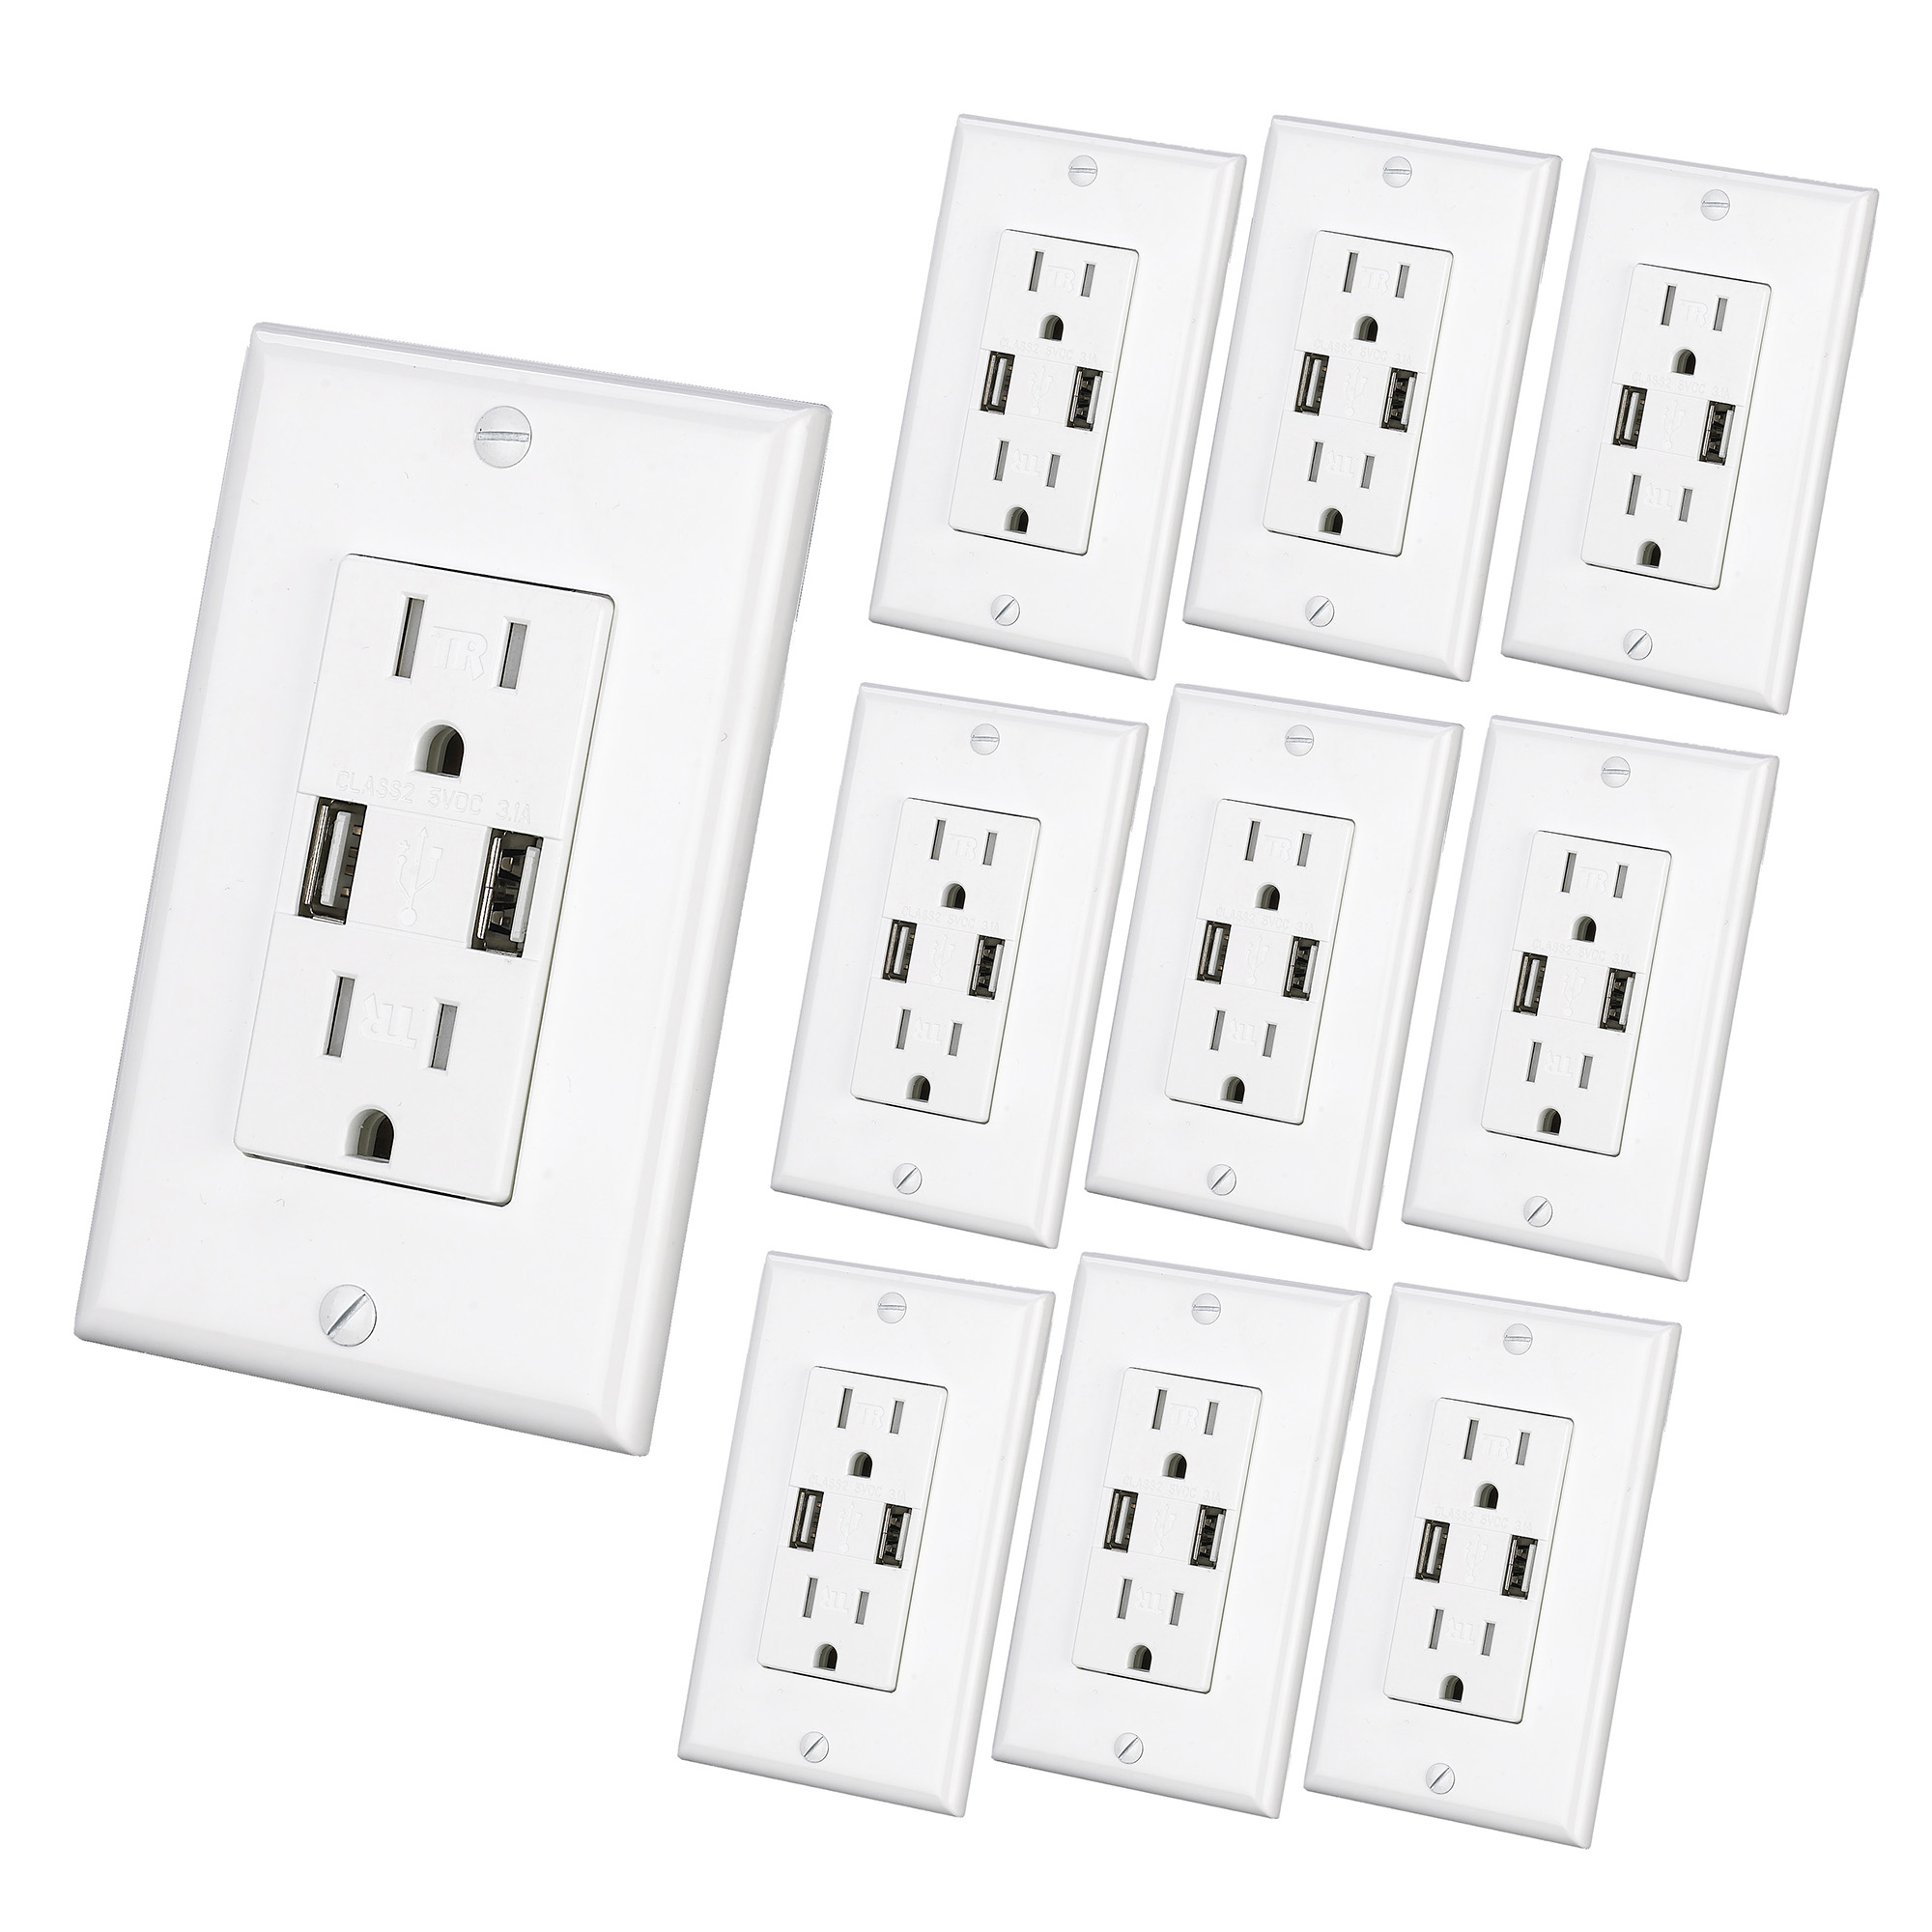 3 1a Usb Wall Outlet 10pack